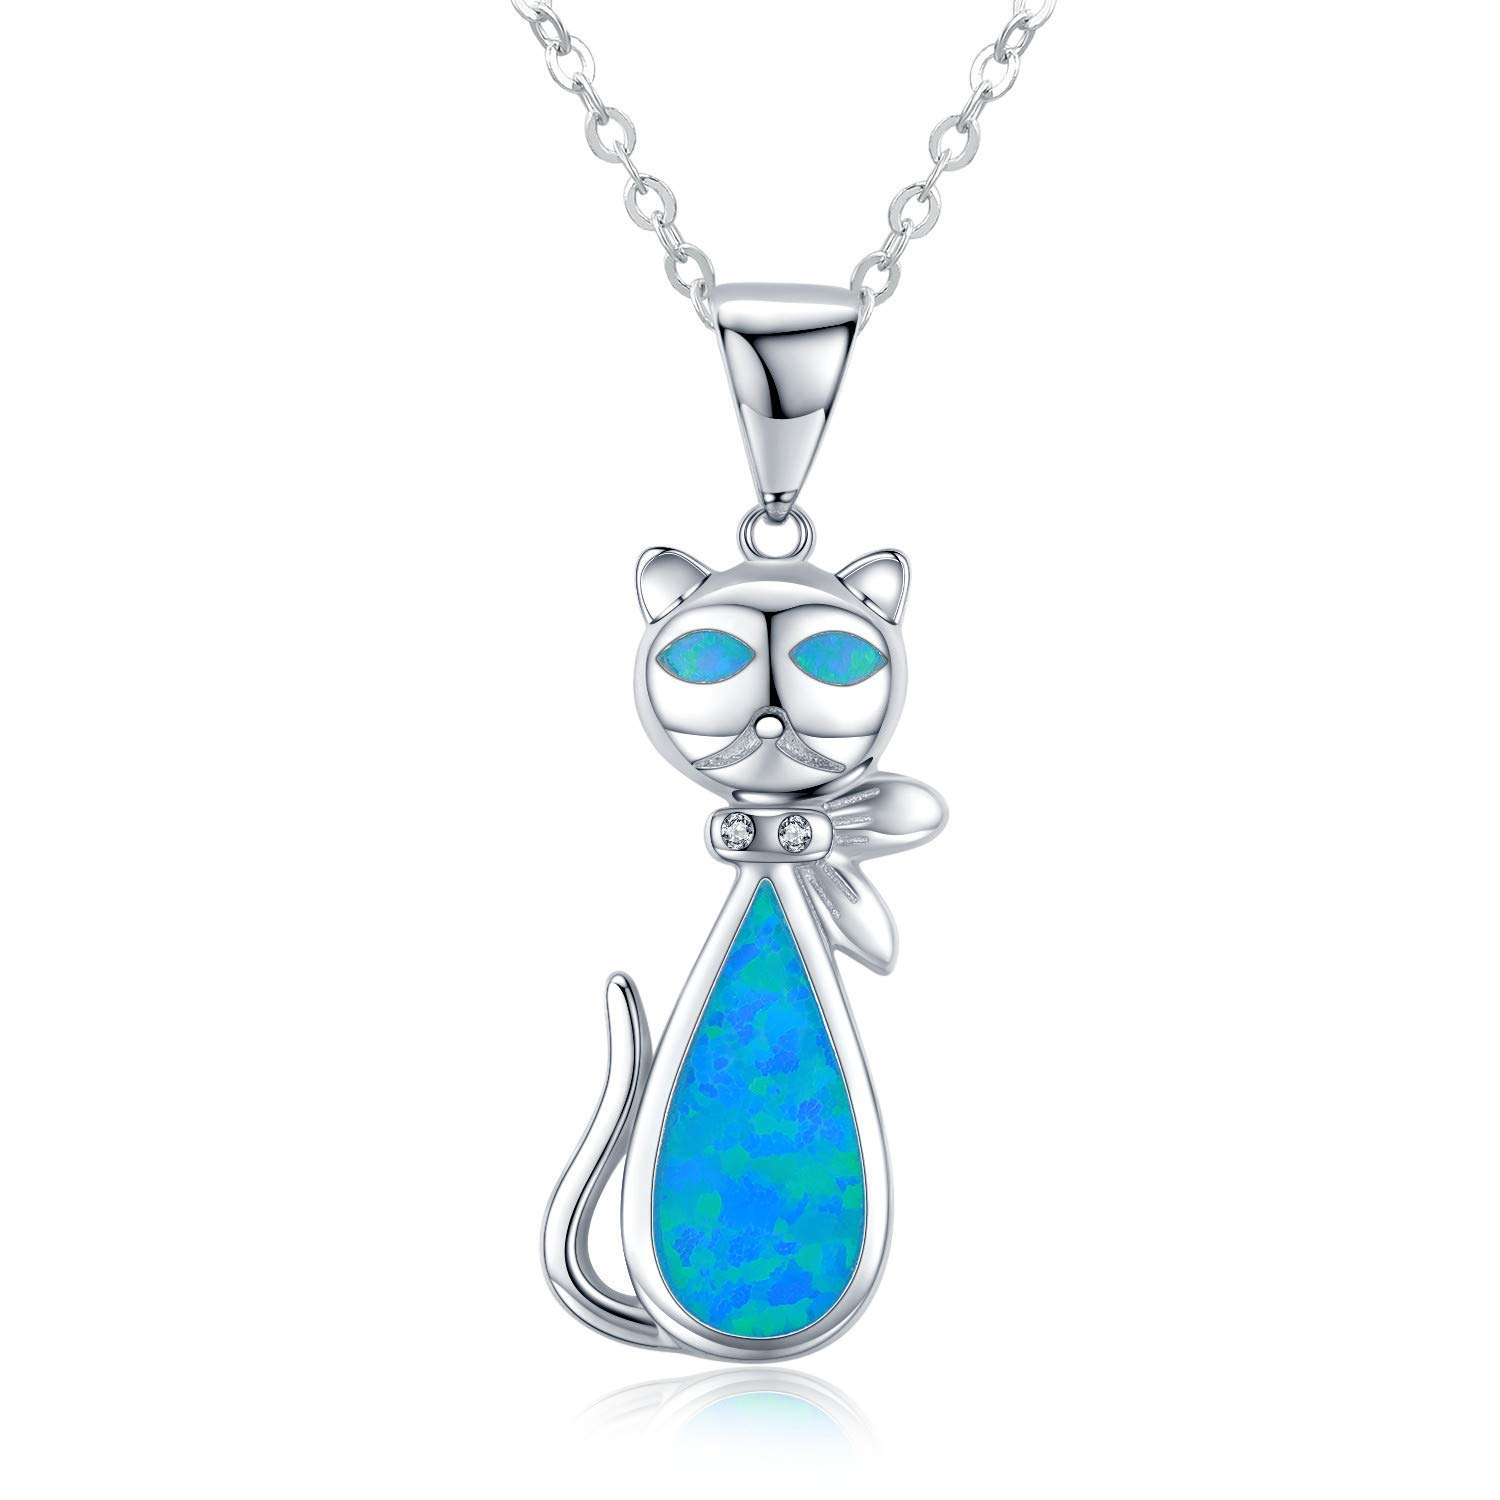 TANGPOET Blue Opal Cat Necklace for Women 925 Sterling Silver Dolphin Jewelry Graduation Gift